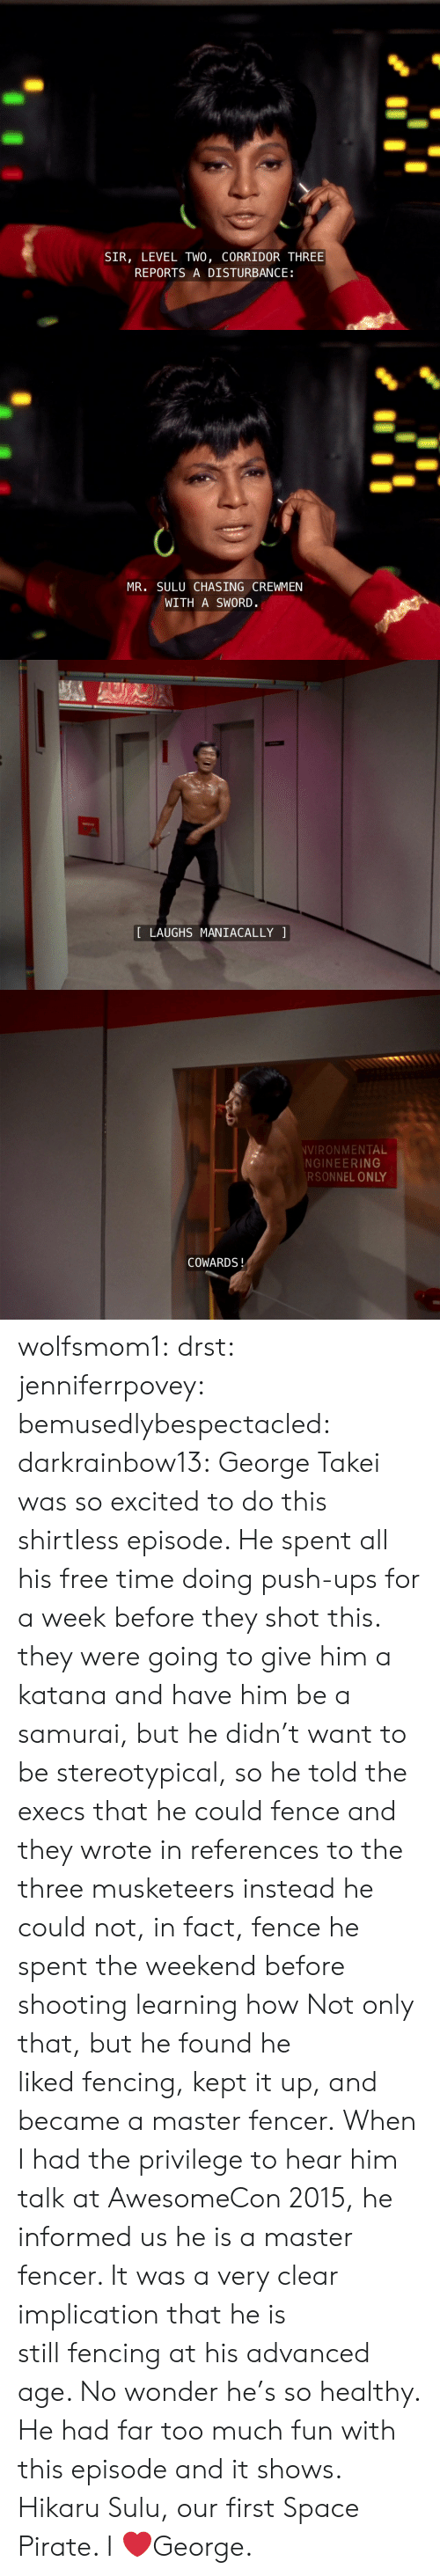 Samurai, Target, and Too Much: SIR, LEVEL TWO, CORRIDOR THREE  REPORTS A DISTURBANCE   MR. SULU CHASING CREWMEN  WITH A SWORD.   LAUGHS MANIACALLY   VIRONMENTAL  NGINEERING  RSONNEL ONLY  COWARDS! wolfsmom1:  drst:   jenniferrpovey:  bemusedlybespectacled:  darkrainbow13:  George Takei was so excited to do this shirtless episode. He spent all his free time doing push-ups for a week before they shot this.  they were going to give him a katana and have him be a samurai, but he didn't want to be stereotypical, so he told the execs that he could fence and they wrote in references to the three musketeers instead he could not, in fact, fence he spent the weekend before shooting learning how  Not only that, but he found he likedfencing, kept it up, and became a master fencer. When I had the privilege to hear him talk at AwesomeCon 2015, he informed us he isa master fencer. It was a very clear implication that he is stillfencing at his advanced age. No wonder he's so healthy. He had fartoo much fun with this episode and it shows.   Hikaru Sulu, our first Space Pirate.    I ❤️George.